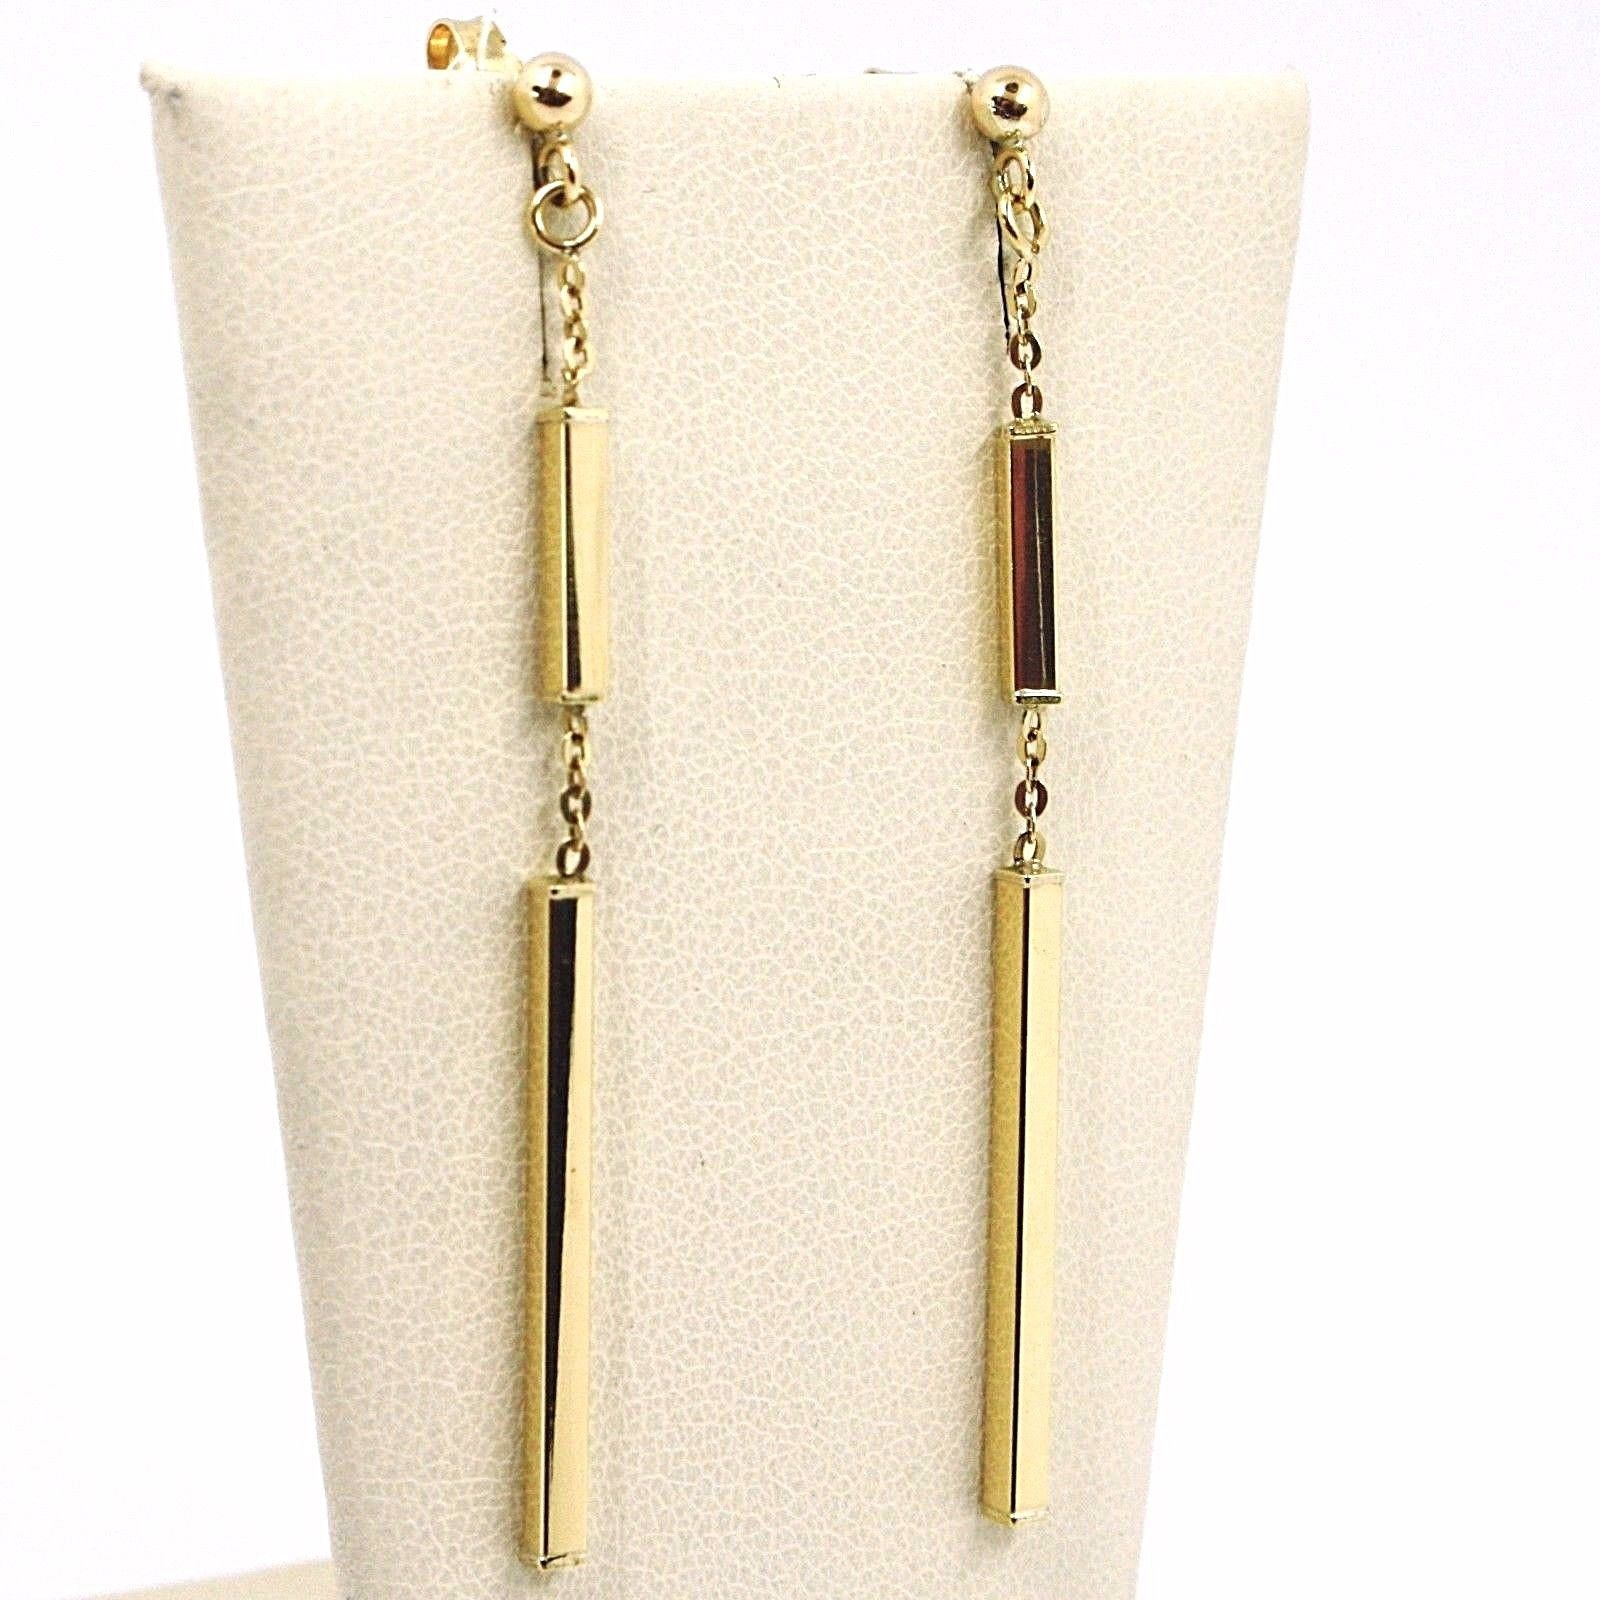 DROP EARRINGS YELLOW GOLD 750 18K, TUBES CHAIN ALTERNATING, ITALY MADE